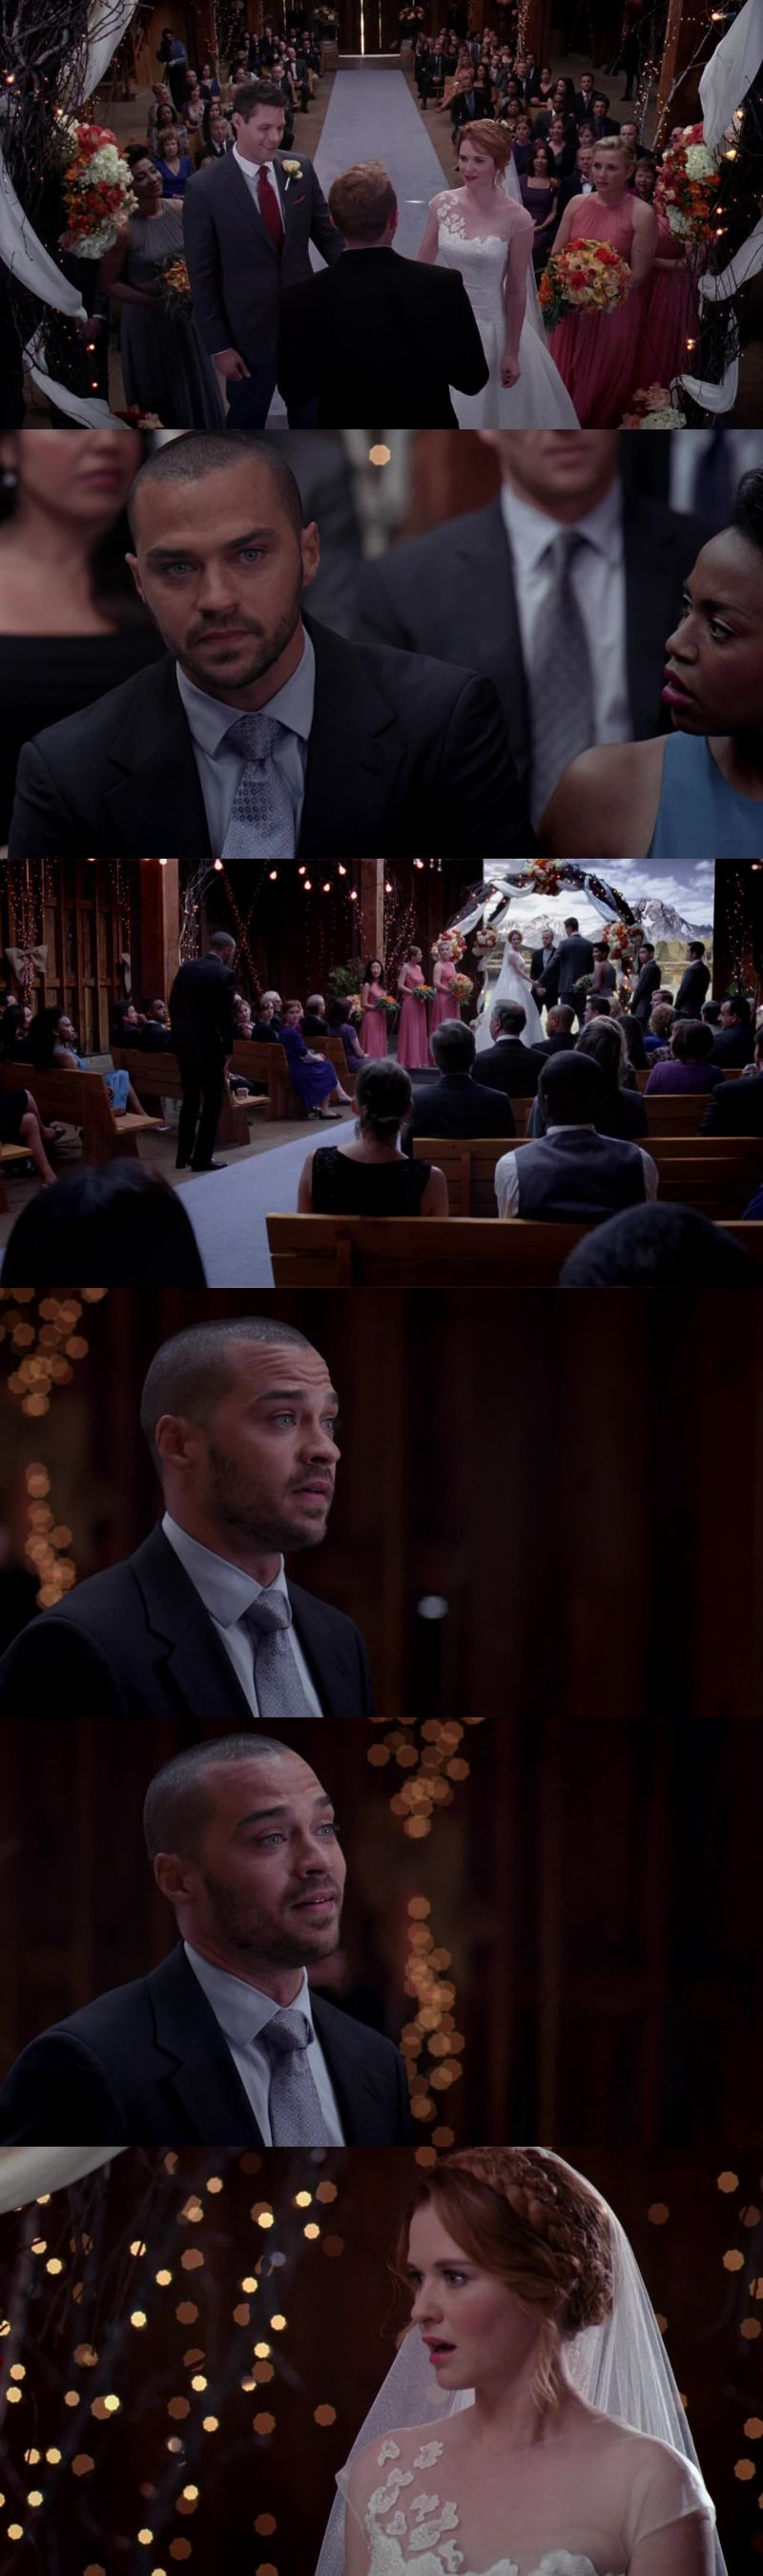 """Mark Sloan said to me: If you love someone, you tell them. Even if you're scared that it's not the right thing. Even if you're scared that it will cause problems. Even if you're scared that it will burn your life to the ground, you say it and you say it loud. And then you go from there."""